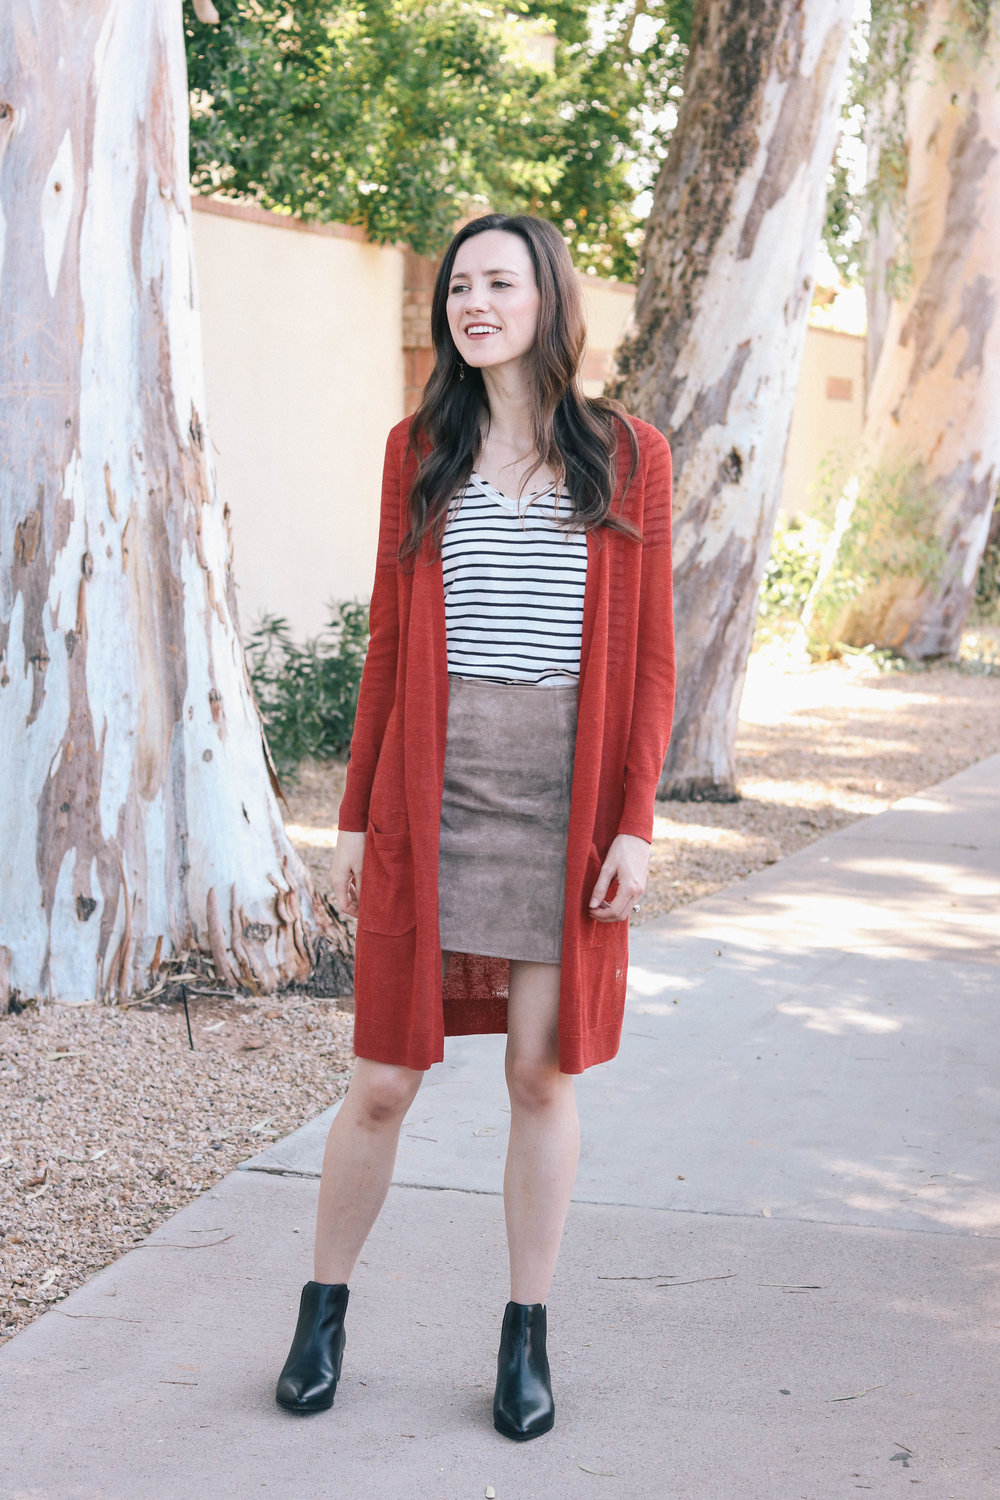 Fall Capsule Wardrobe: Part 1